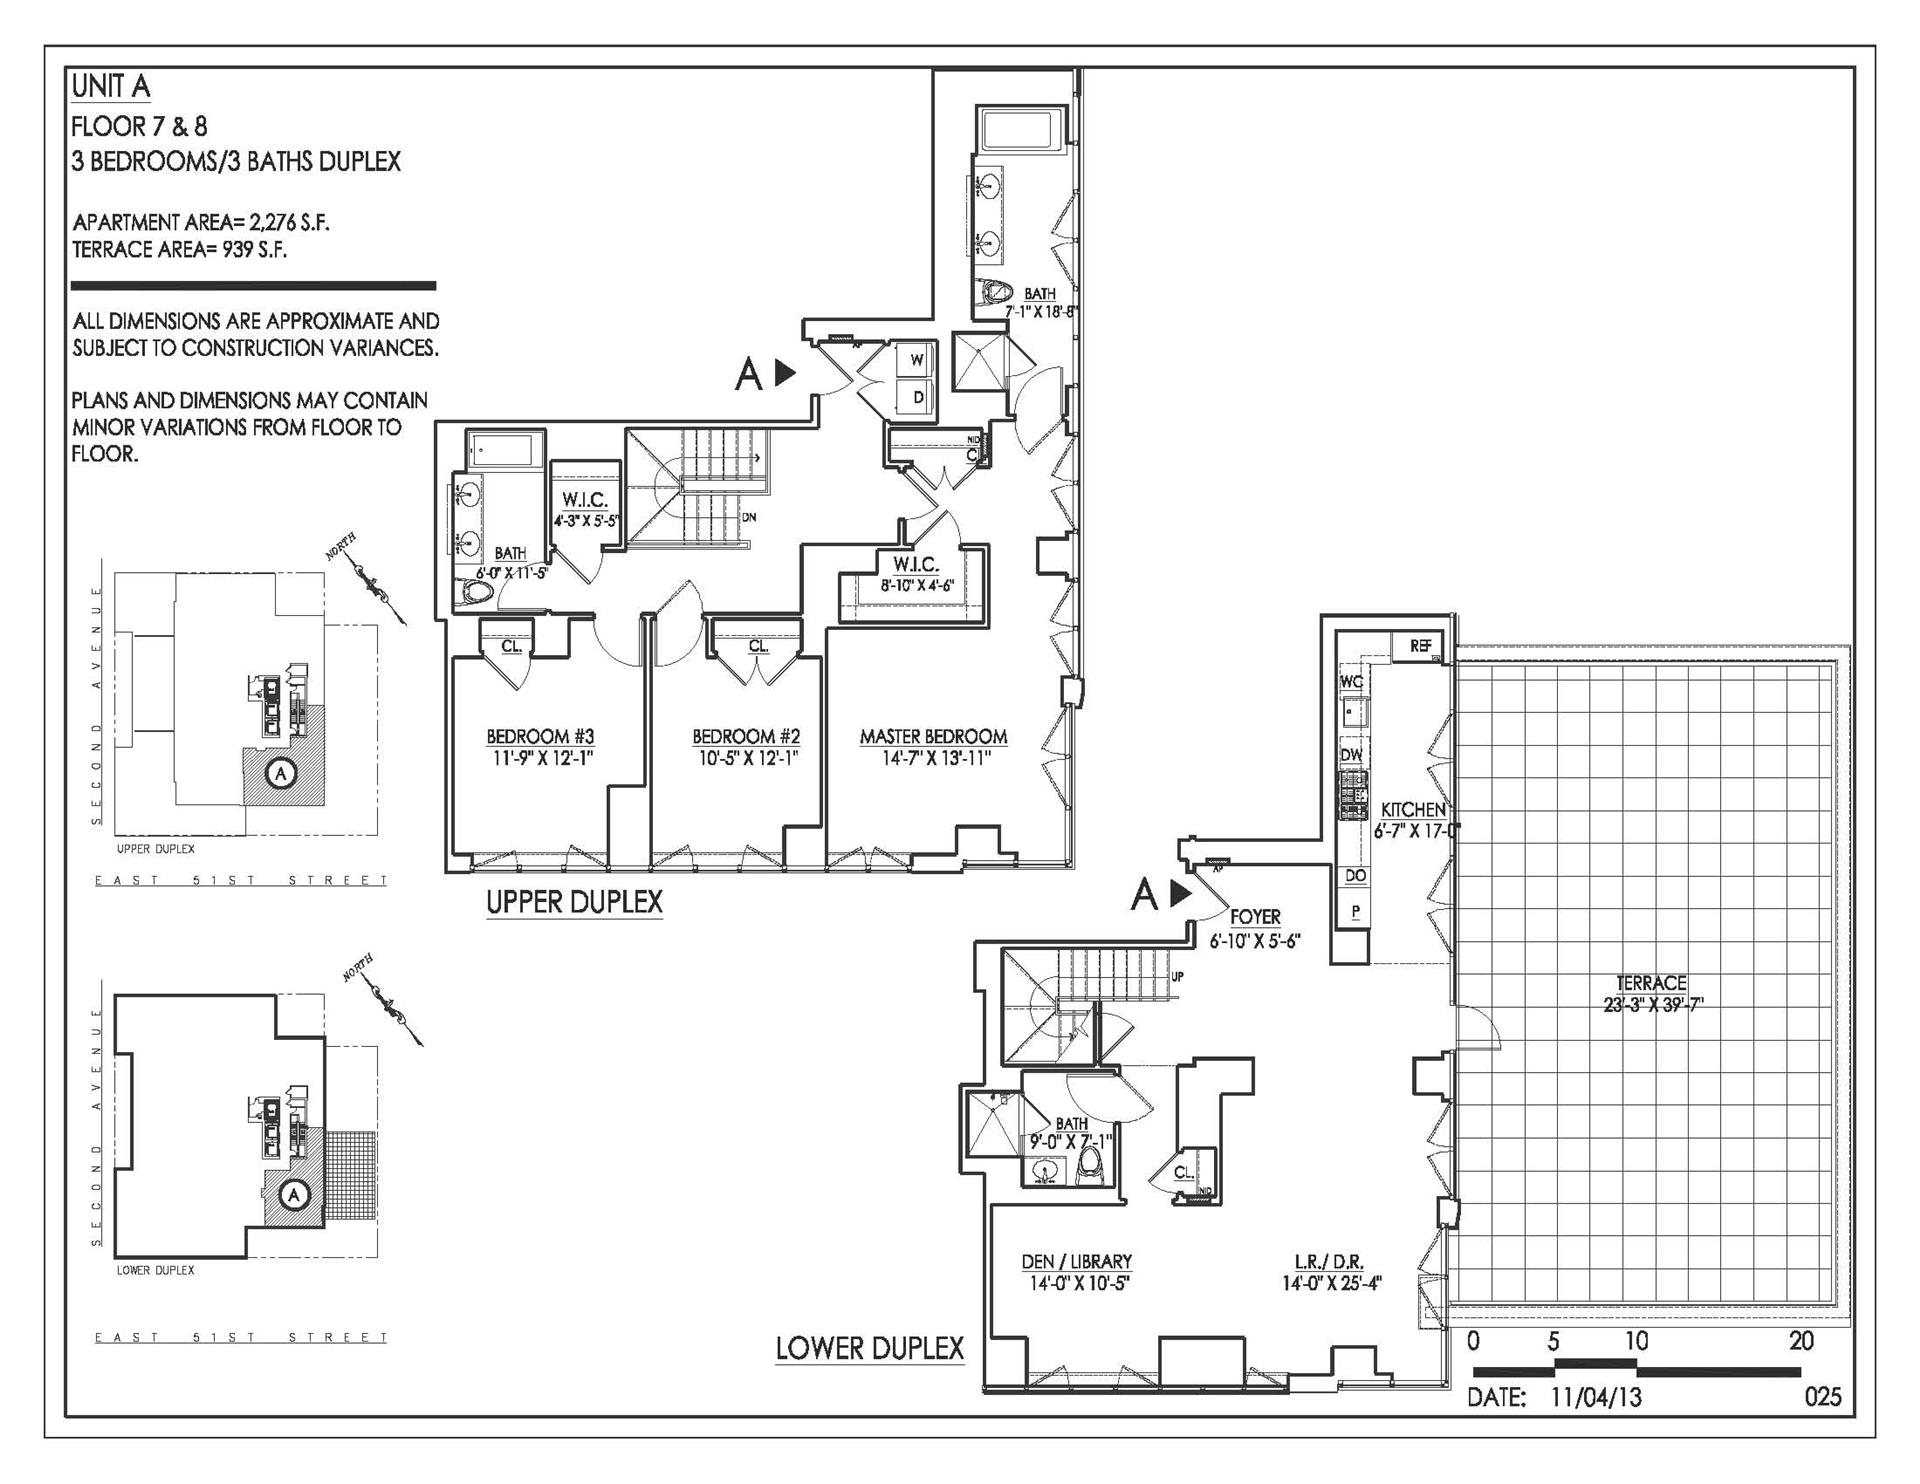 Floor plan of Halcyon, 305 East 51st St, 7A/8A - Turtle Bay, New York